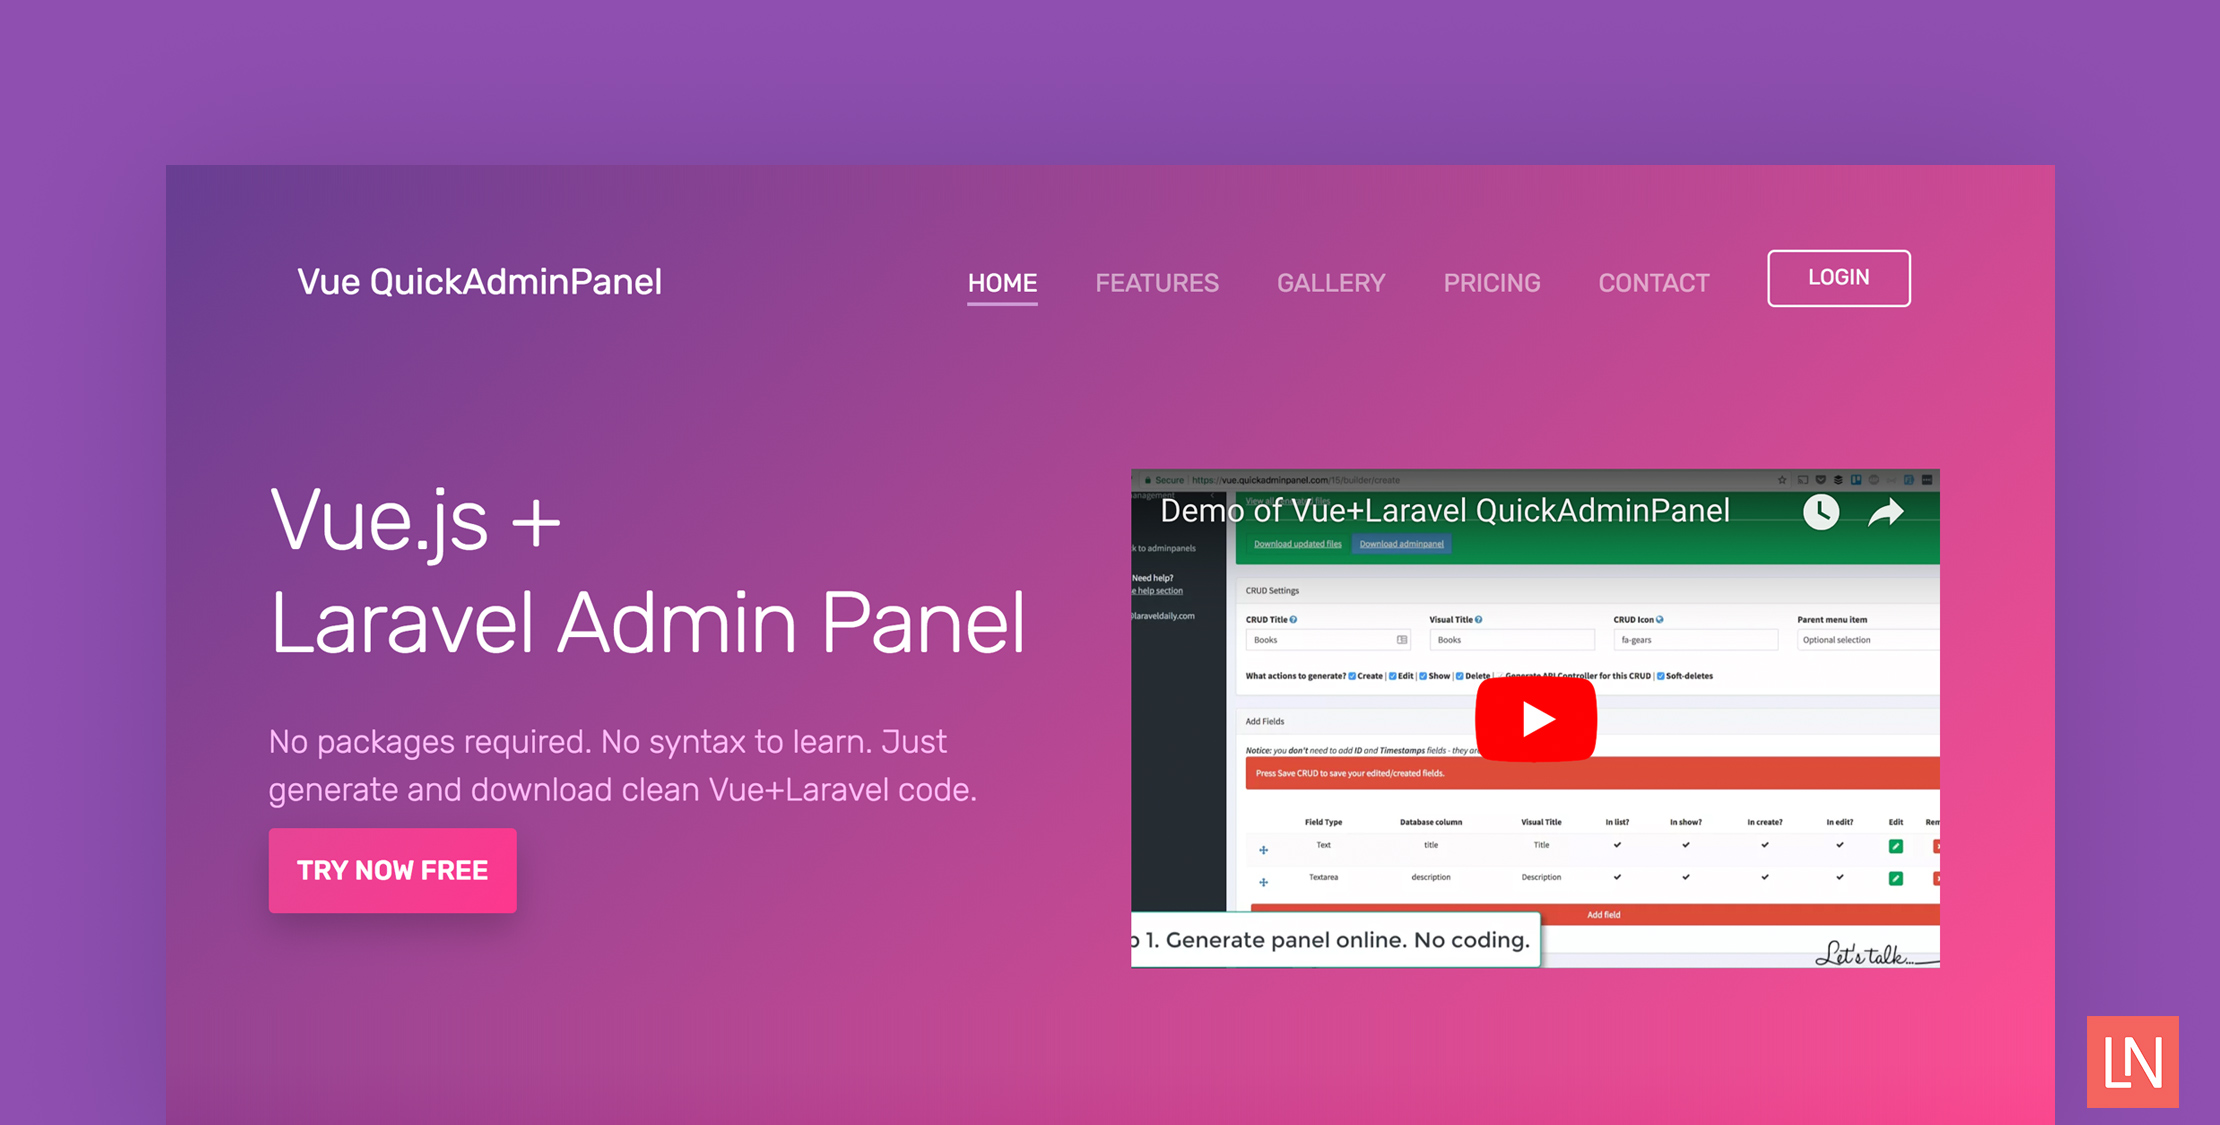 vuejs-laravel-quick-admin-panel.jpg